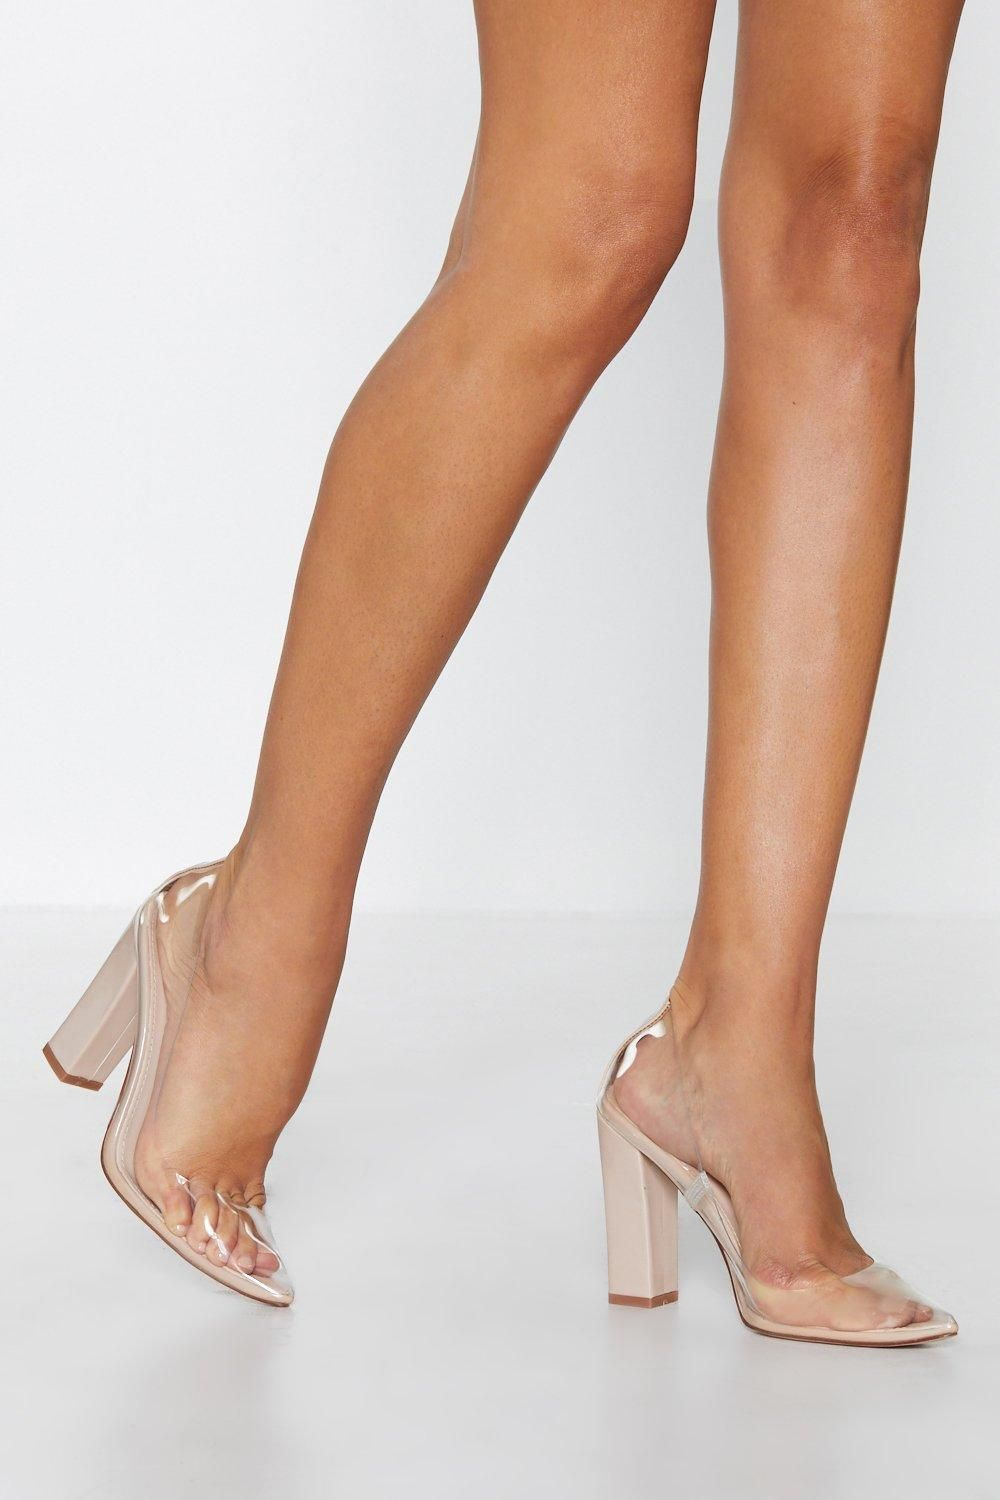 031a880351 Stand Clear Pointed Heel in 2019 | Shoes: heels & sandals | Heels ...